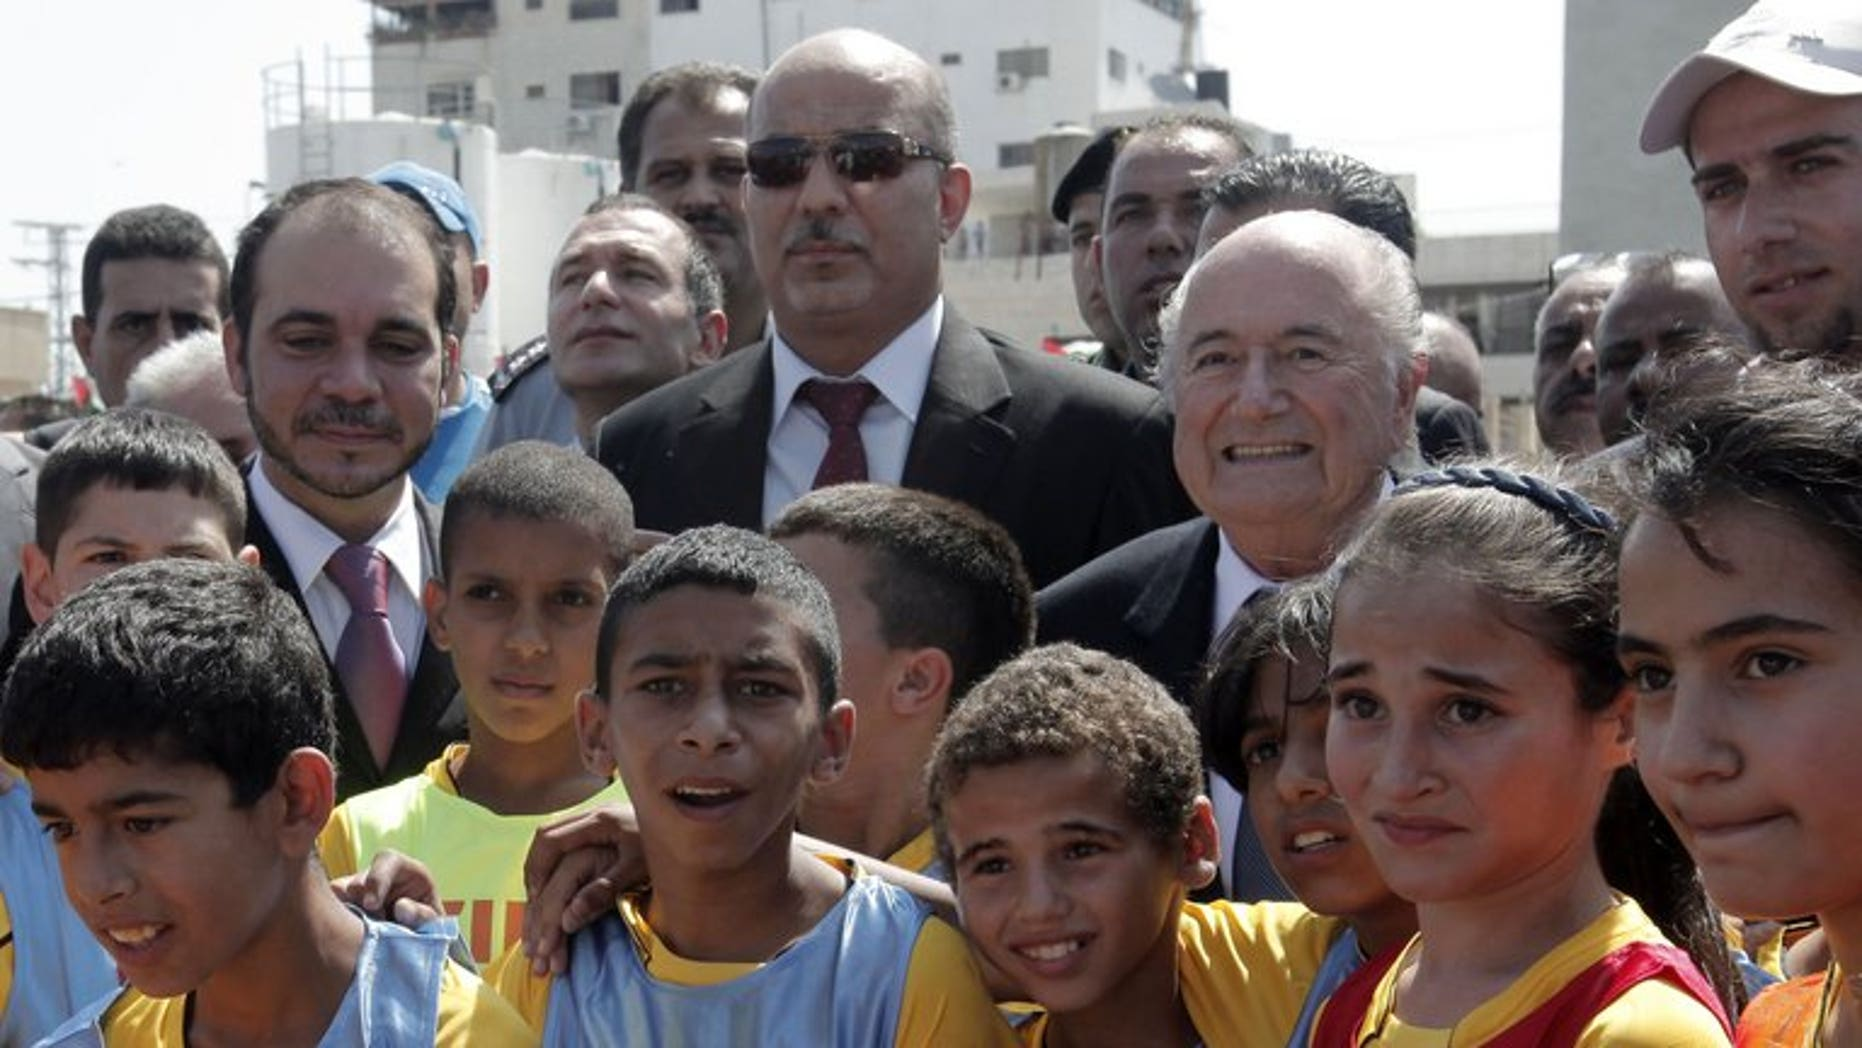 FIFA President Sepp Blatter (centre right), Palestinian Football Association chairman Jibril Rajoub (centre) and FIFA Vice-President Prince Ali bin al-Hussein with Palestinian children in the West Bank town of Tulkarm July 7, 2013.